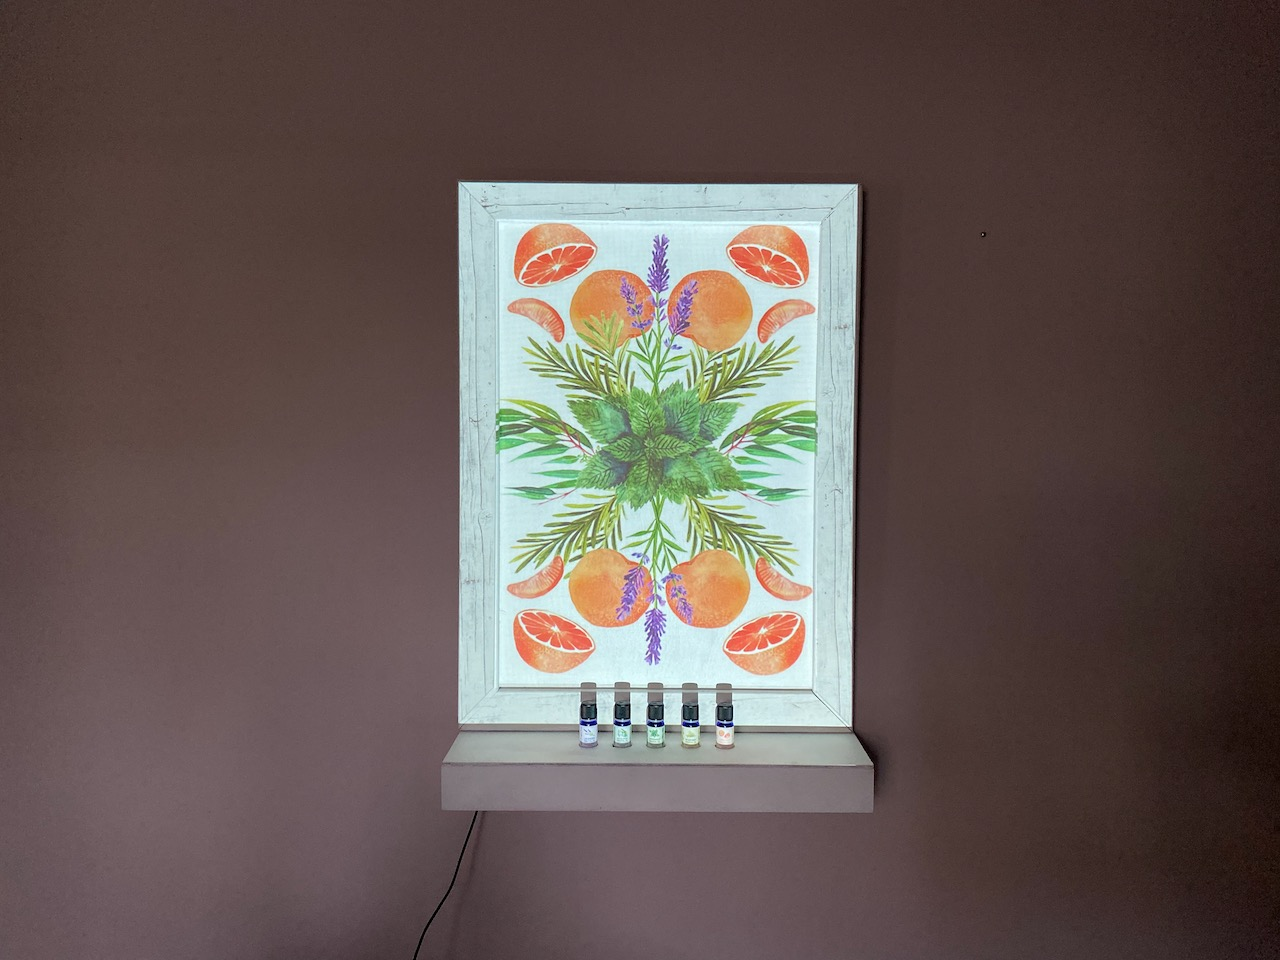 Display frame interactive with projector